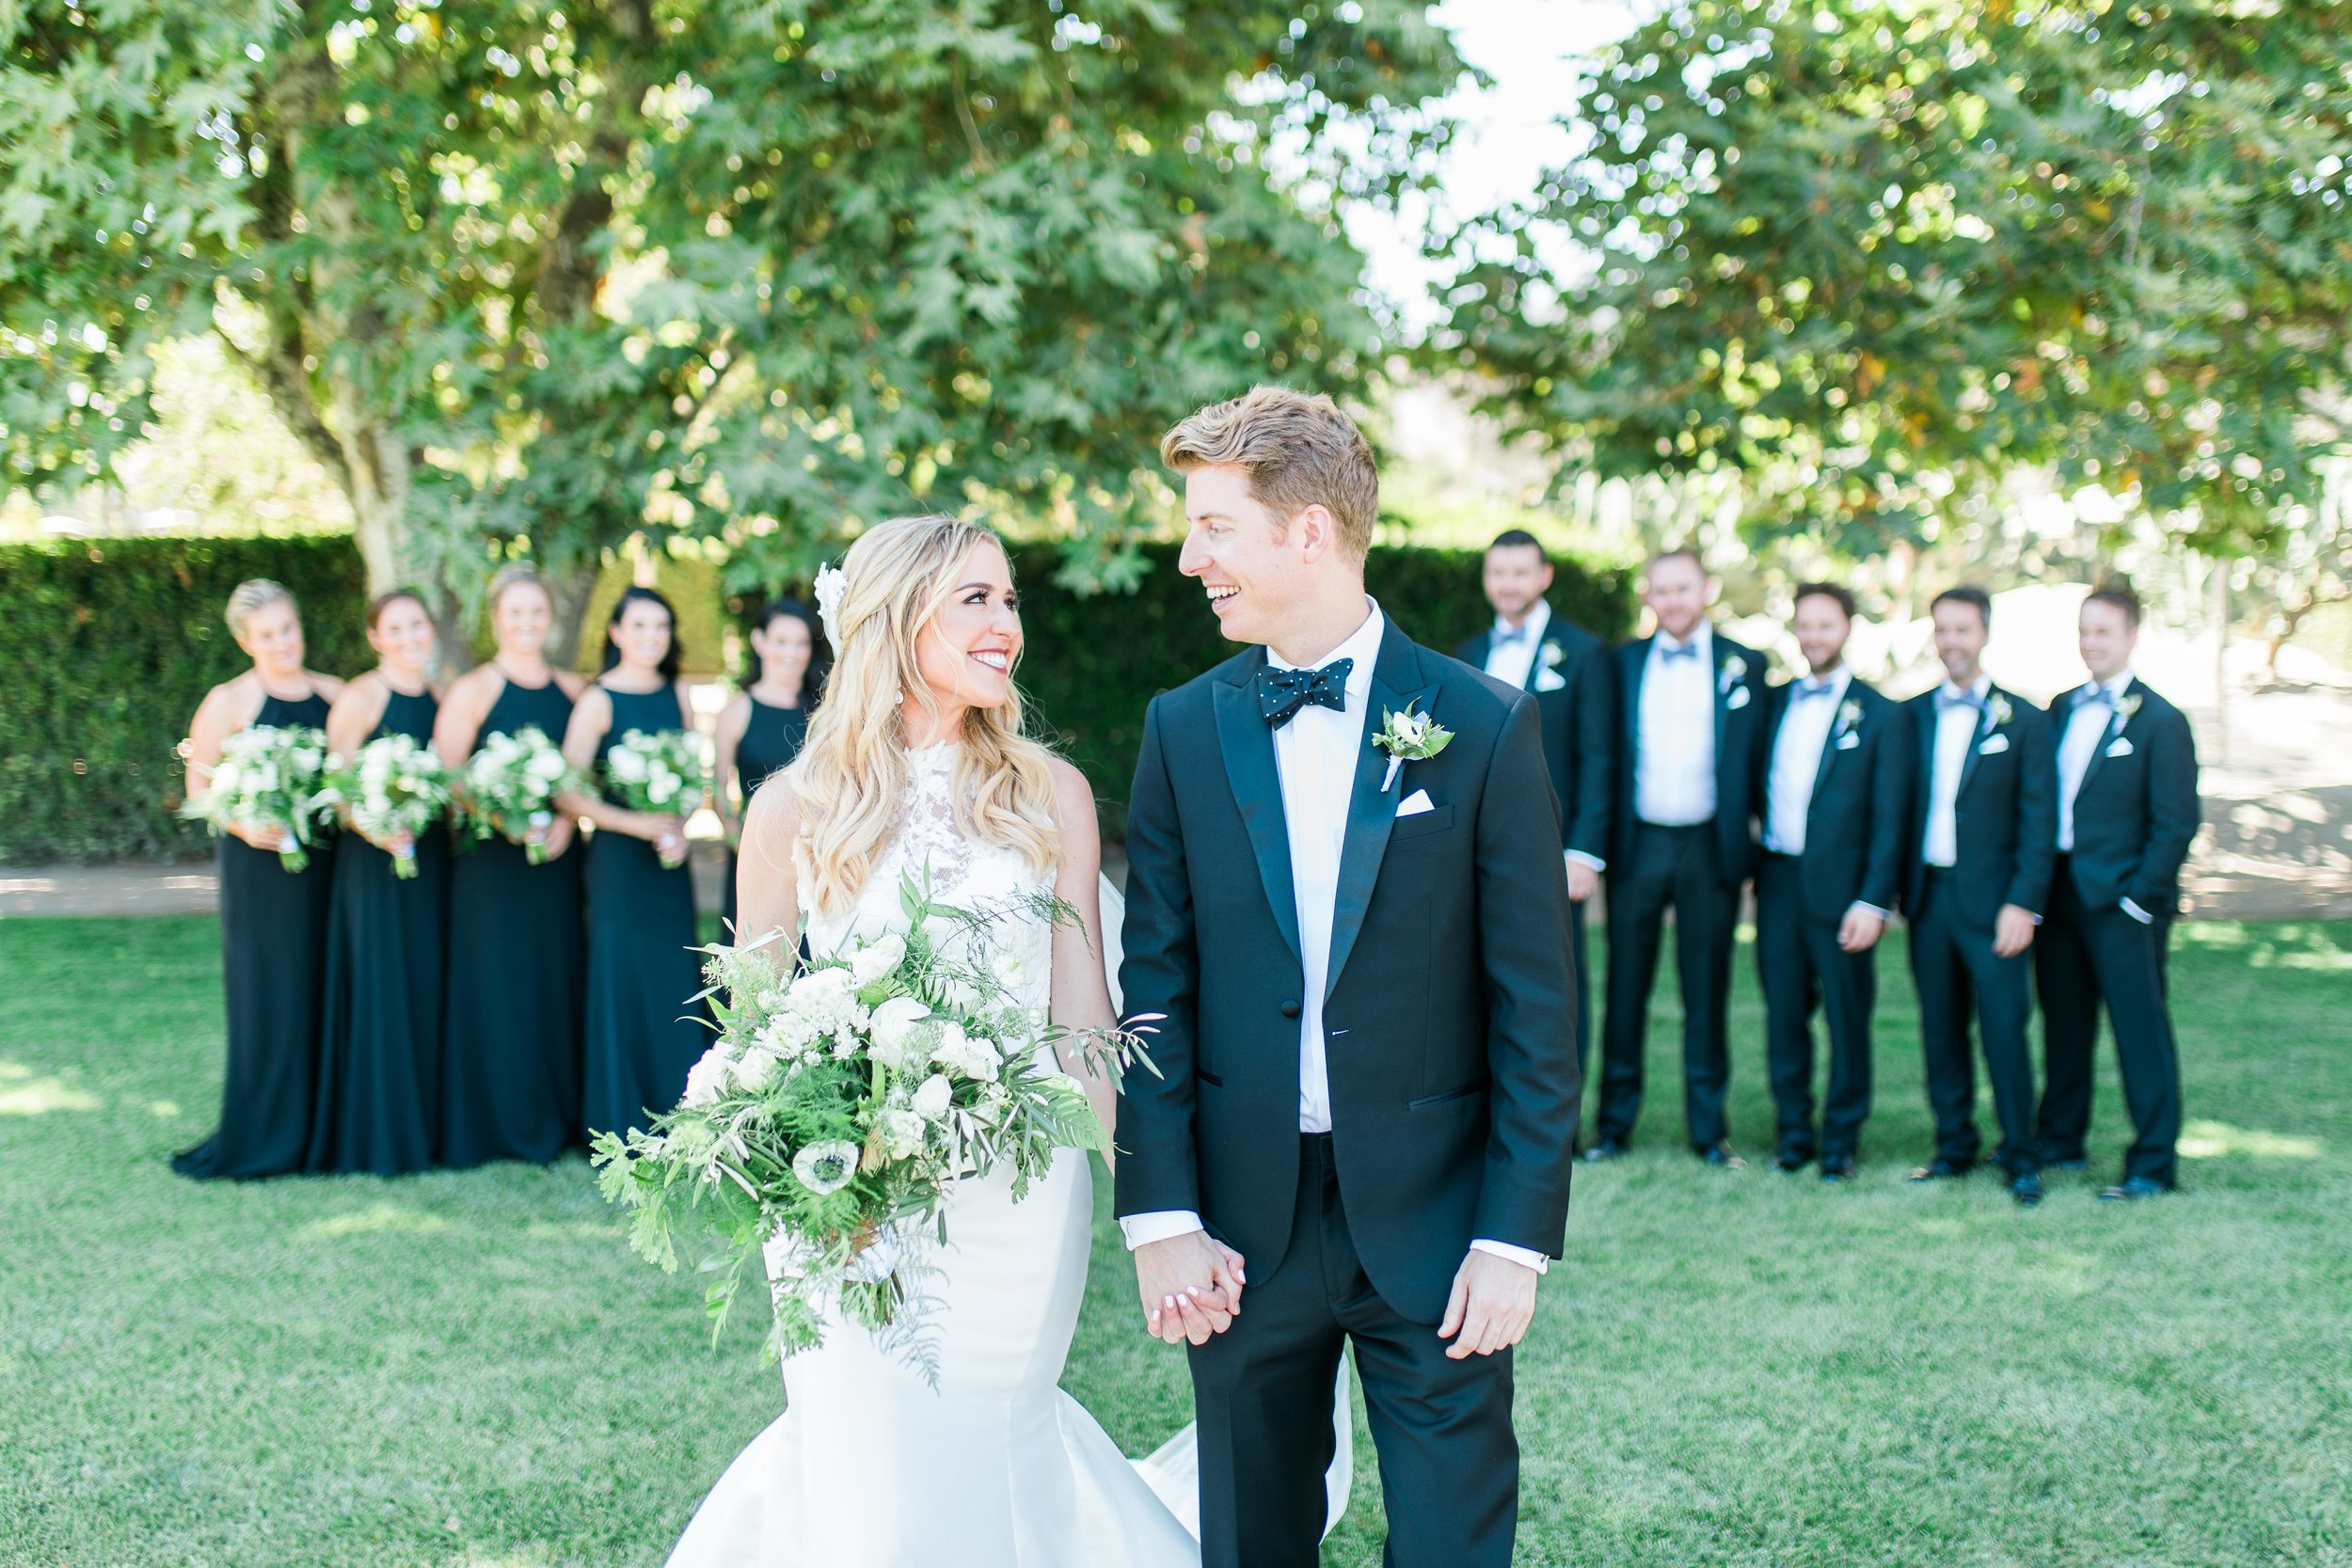 Kelly-Conor-Wedding-SP-by-JBJ-Pictures-2.jpg